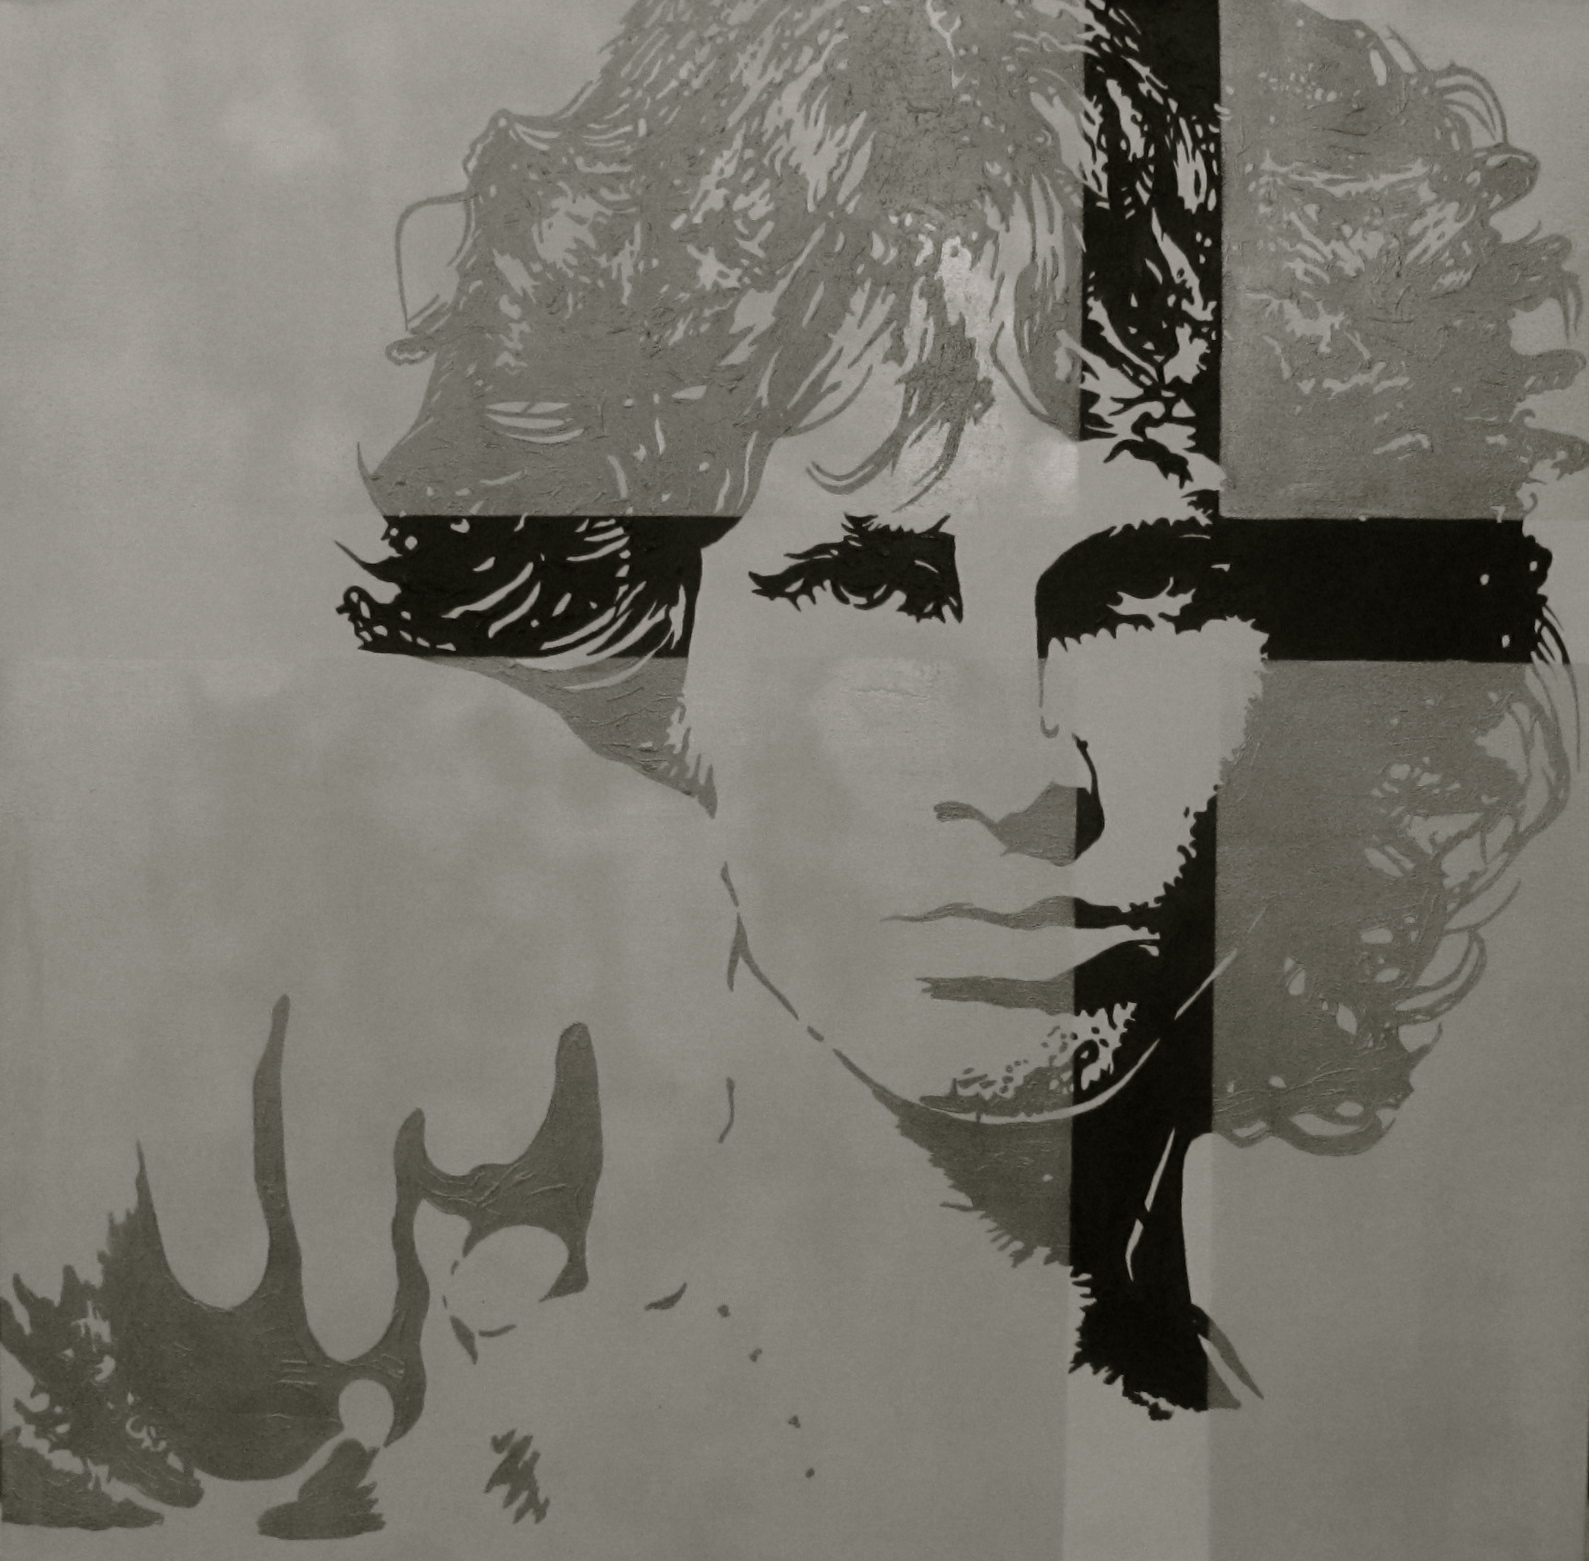 Jim Morrison,by Louis-Nicolas Darbon